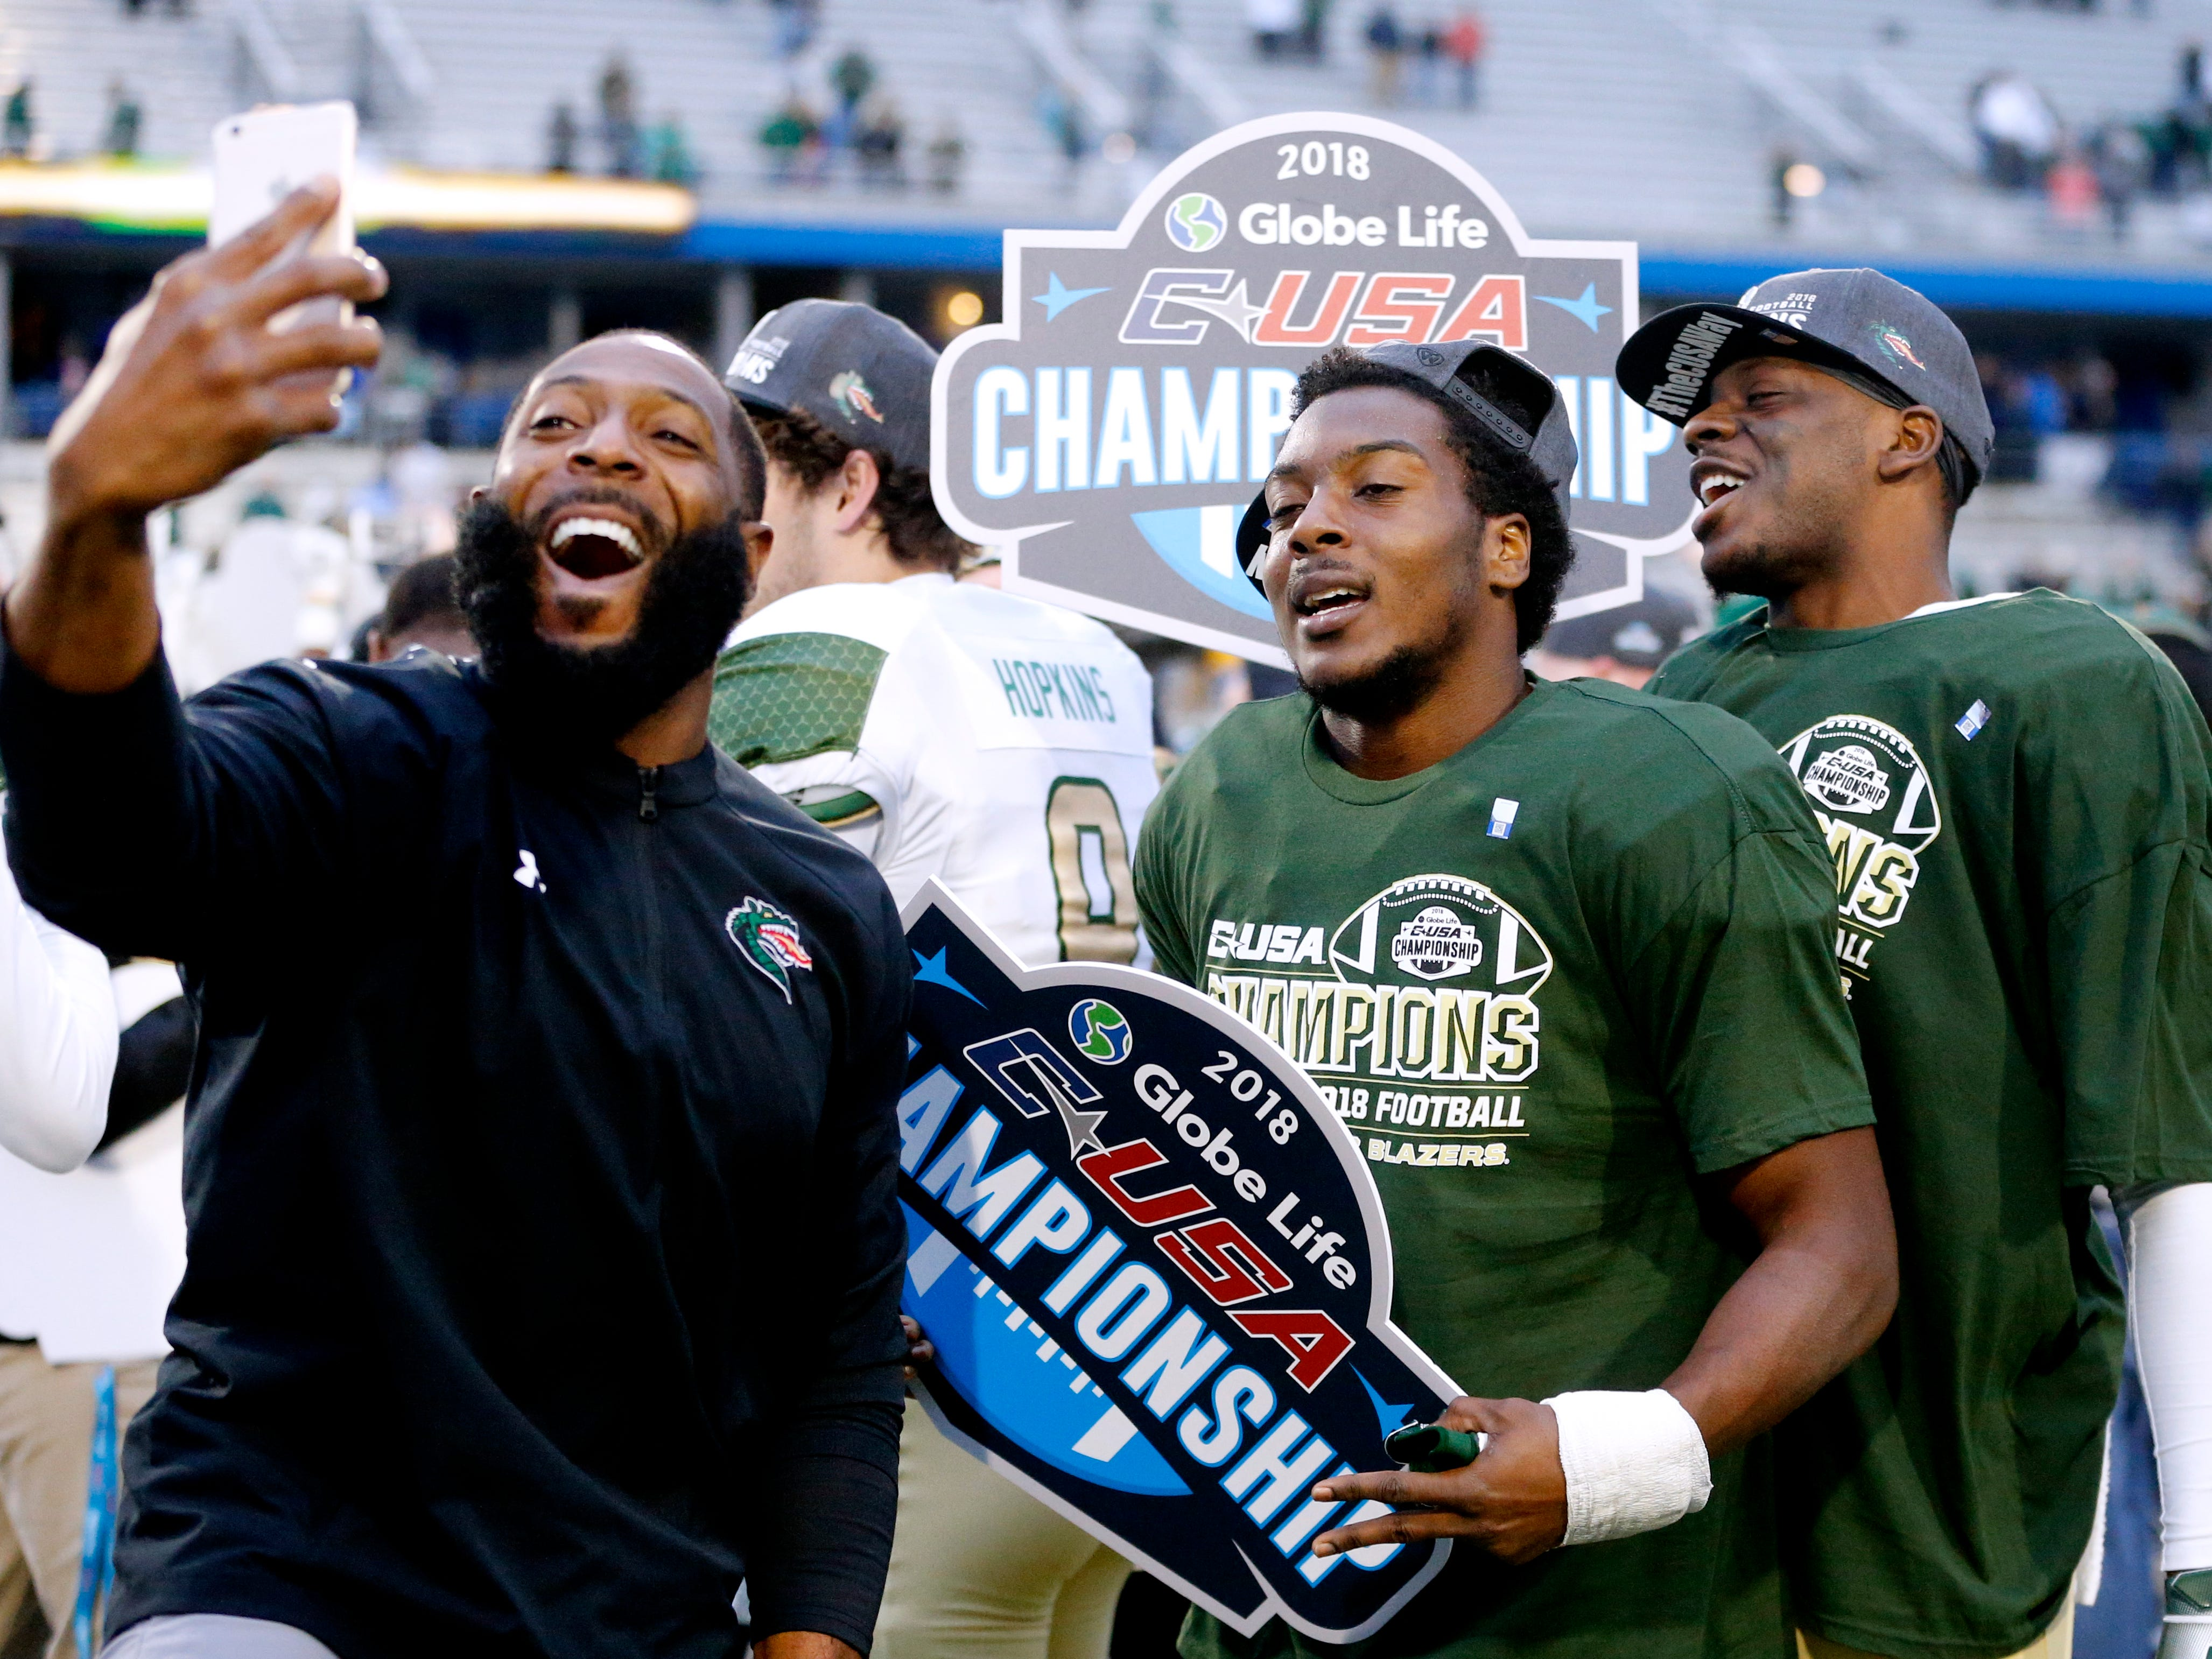 UAB assistant coach, UAB's running back Spencer Brown (28), and UAB's wide receiver Kendall Parham (16) celebrate the 27-25 win over MTSU in the Conference USA Championship at MTSU on Saturday, Dec. 1, 2018.